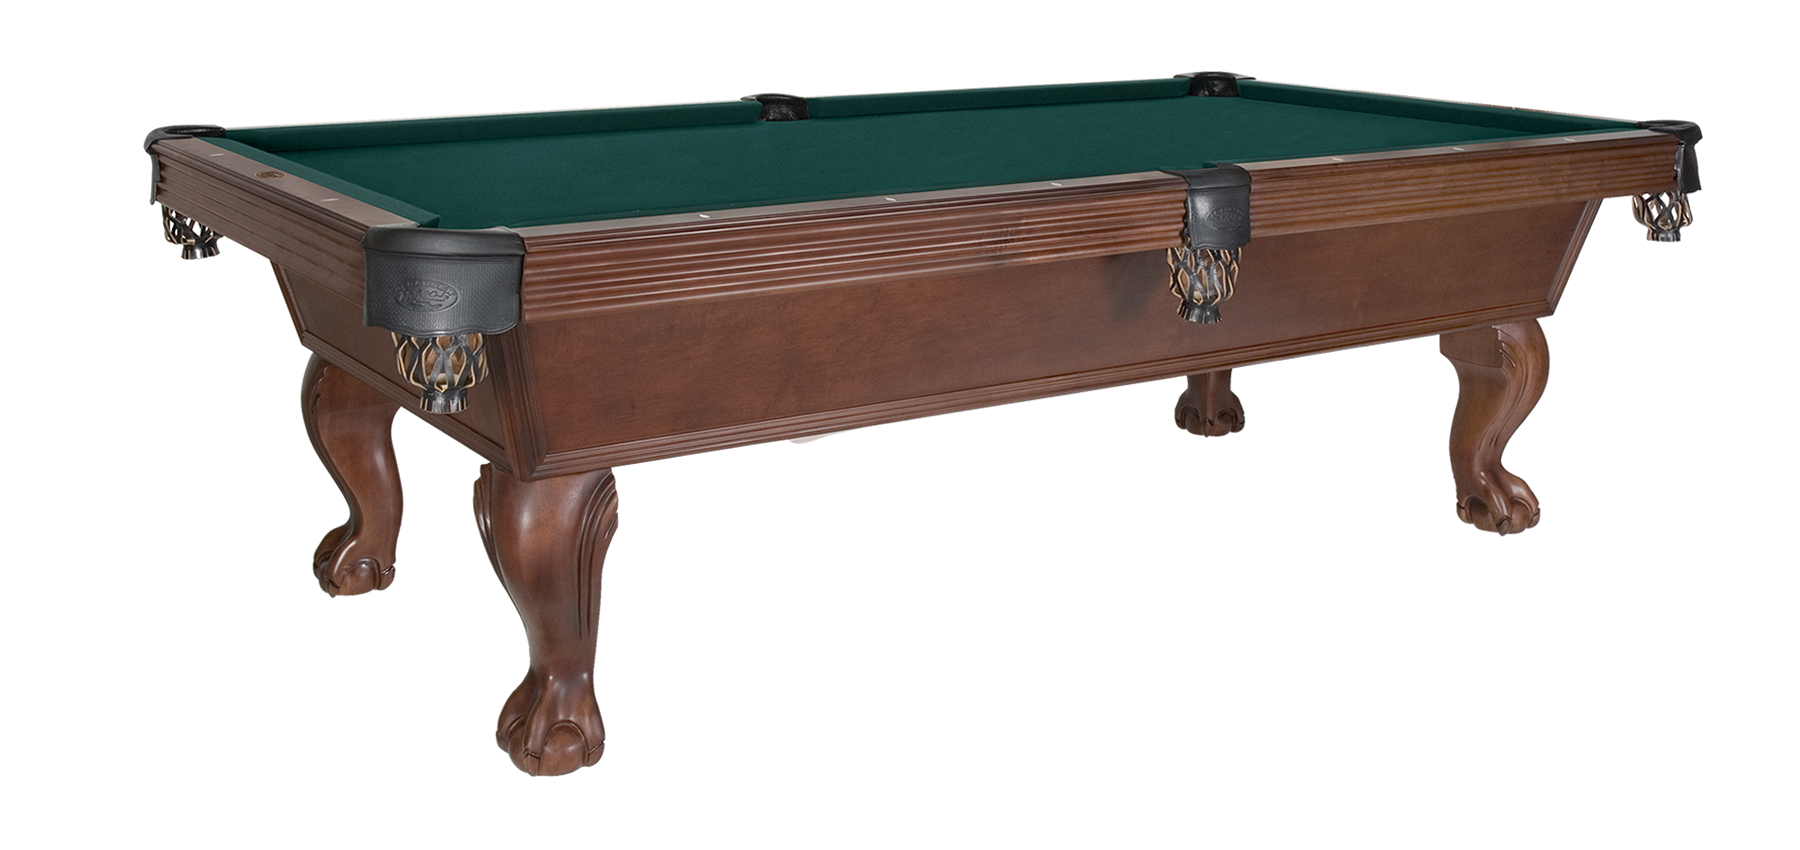 Olhausen Billiards And Barstools Gallery Pool Tables Home Theater Seating In Huntsville Al